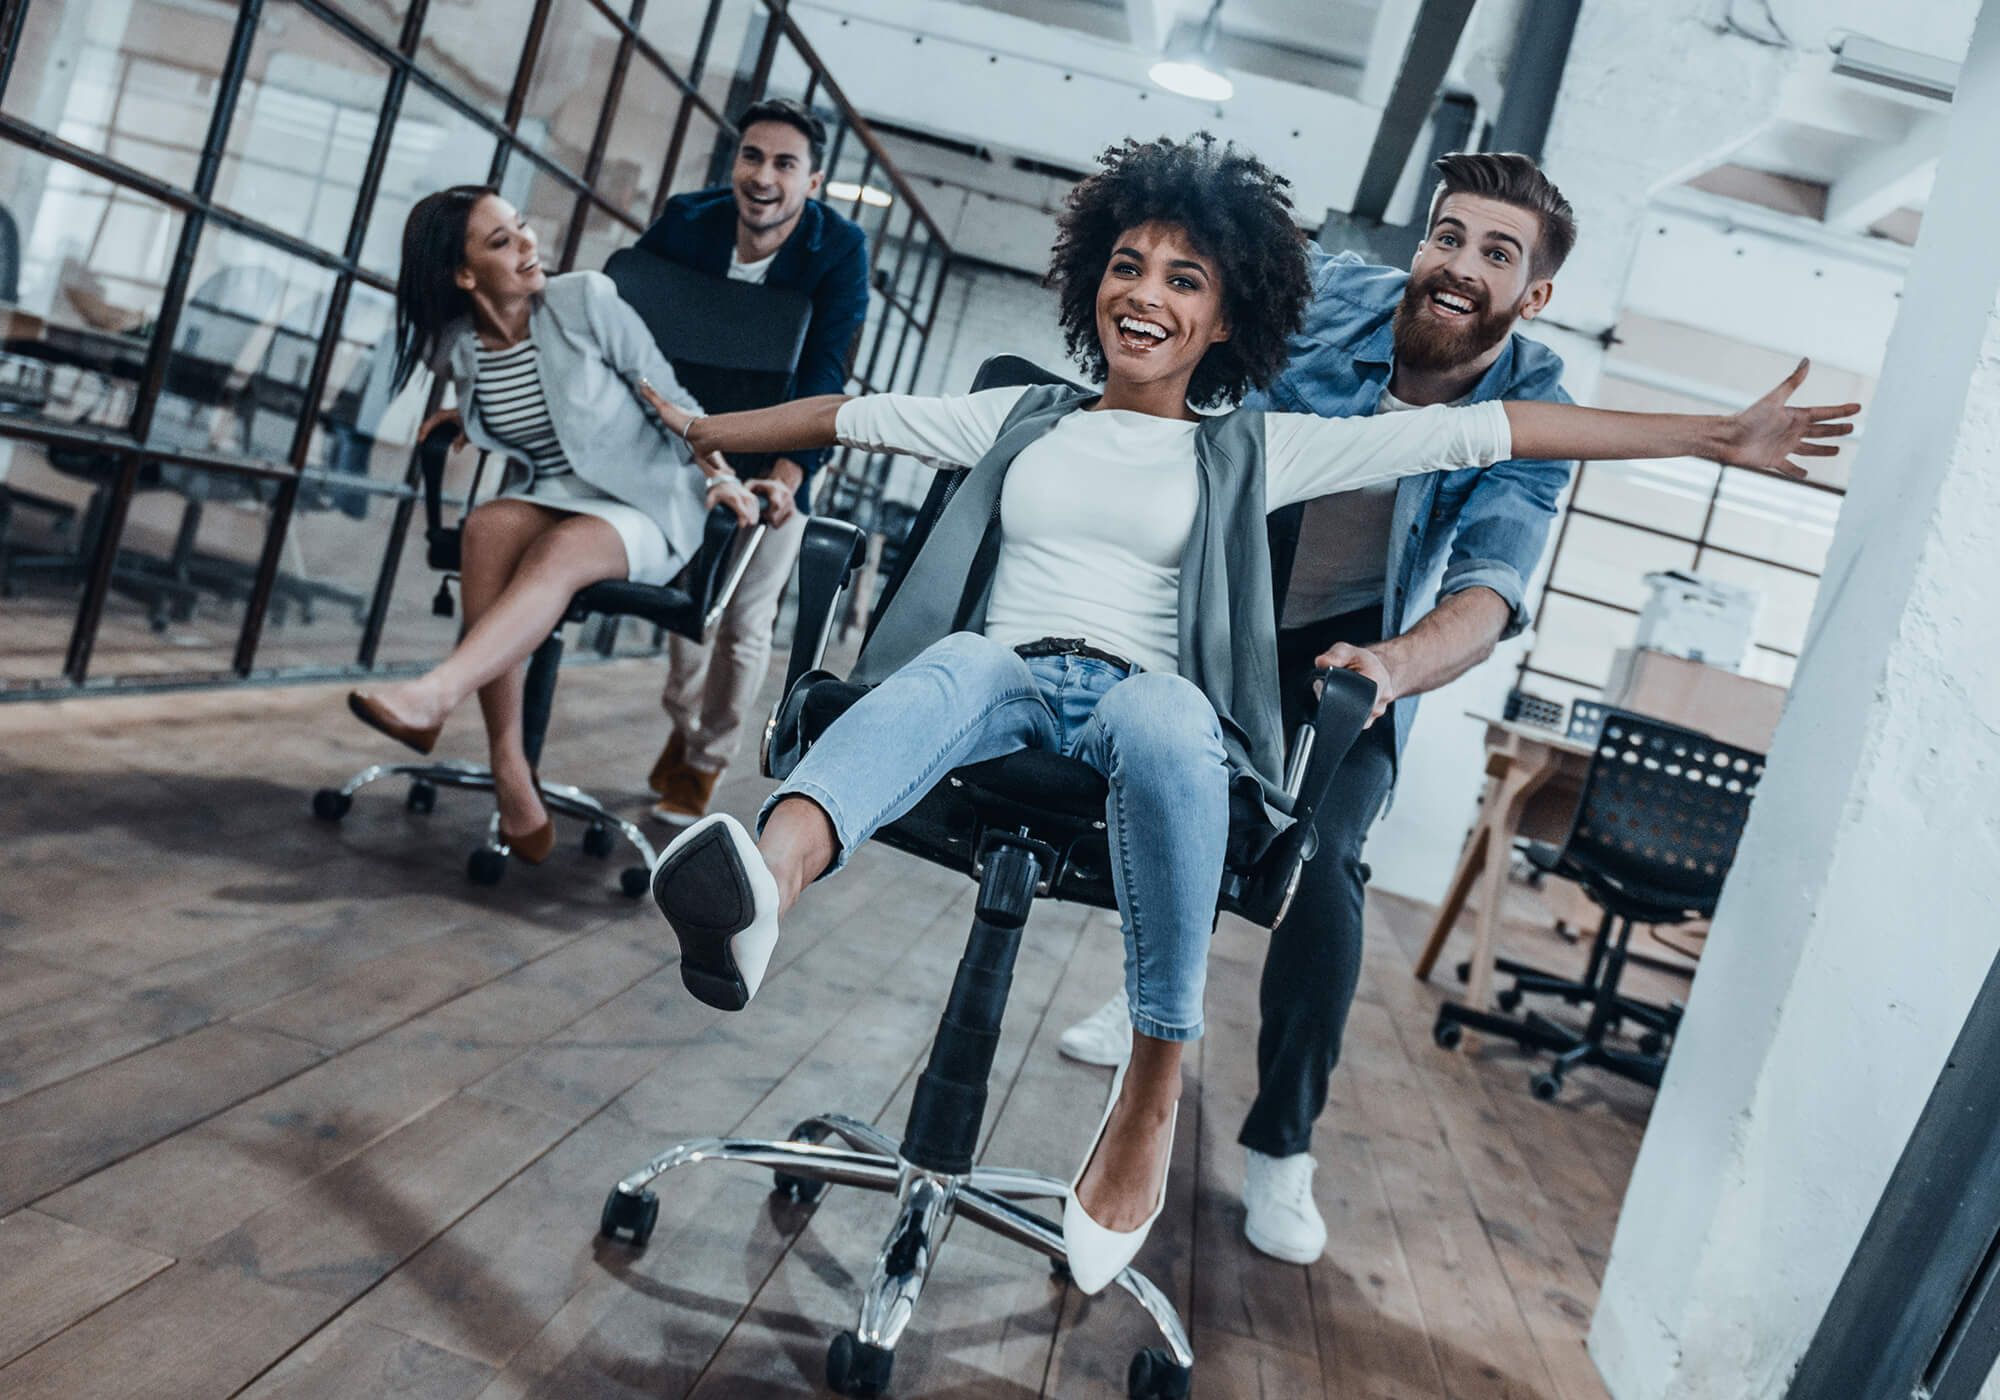 employees playing in office on chairs